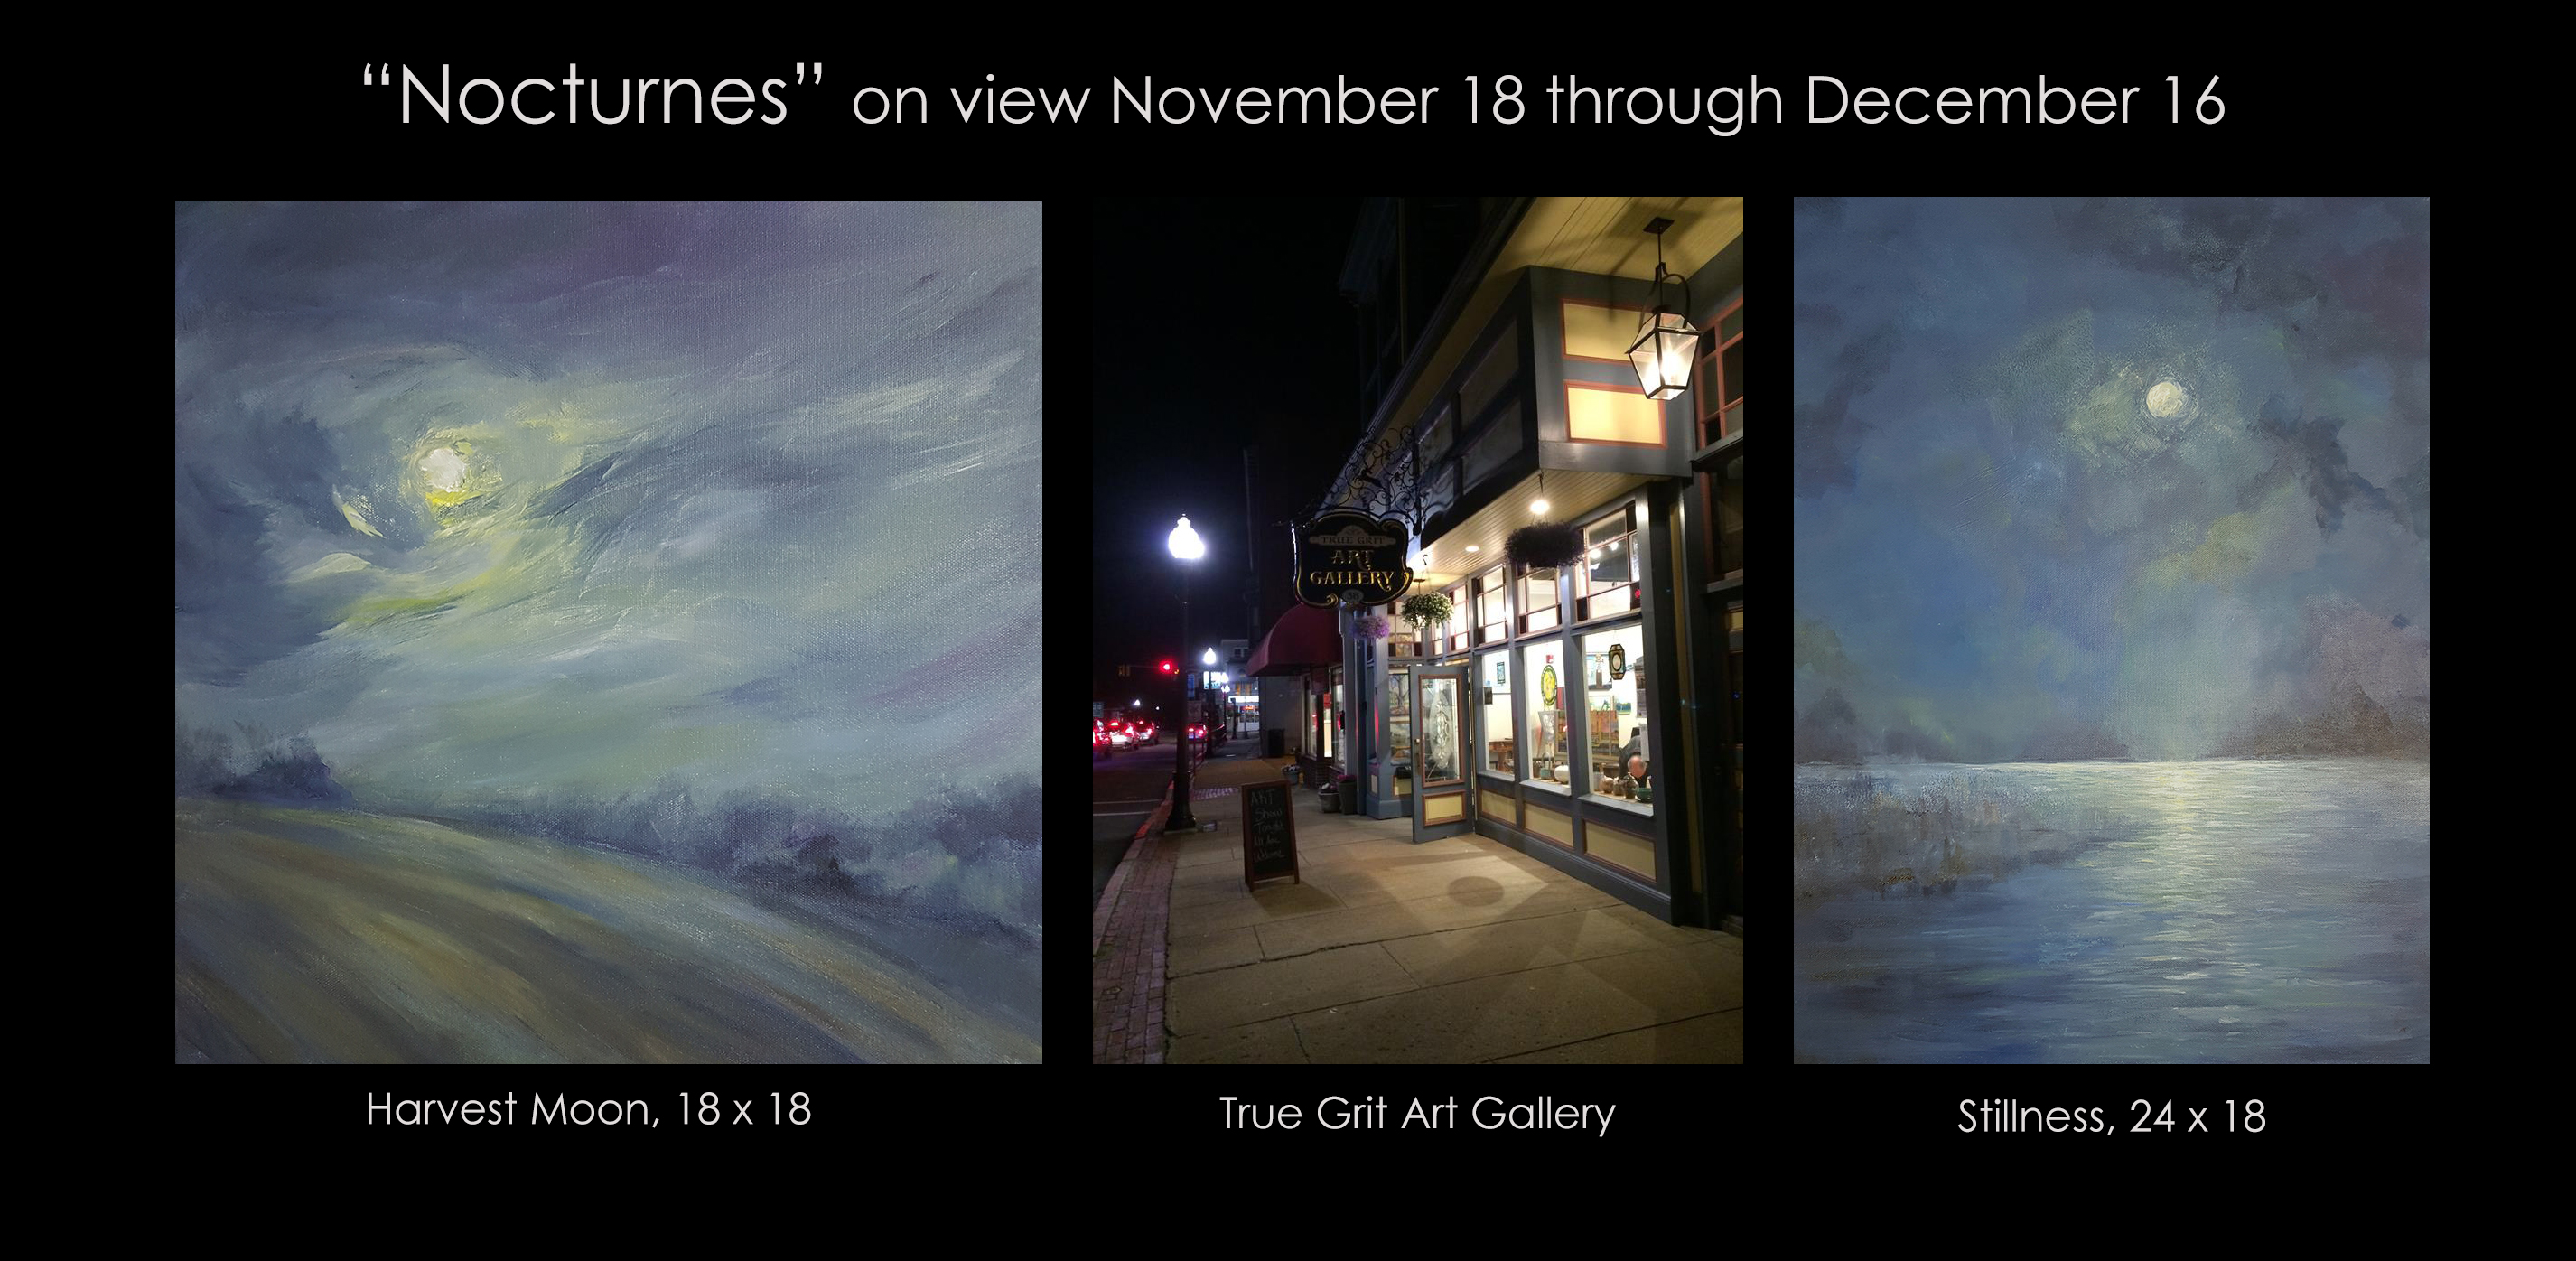 Nocturne exhibtion at True Grit Gallery